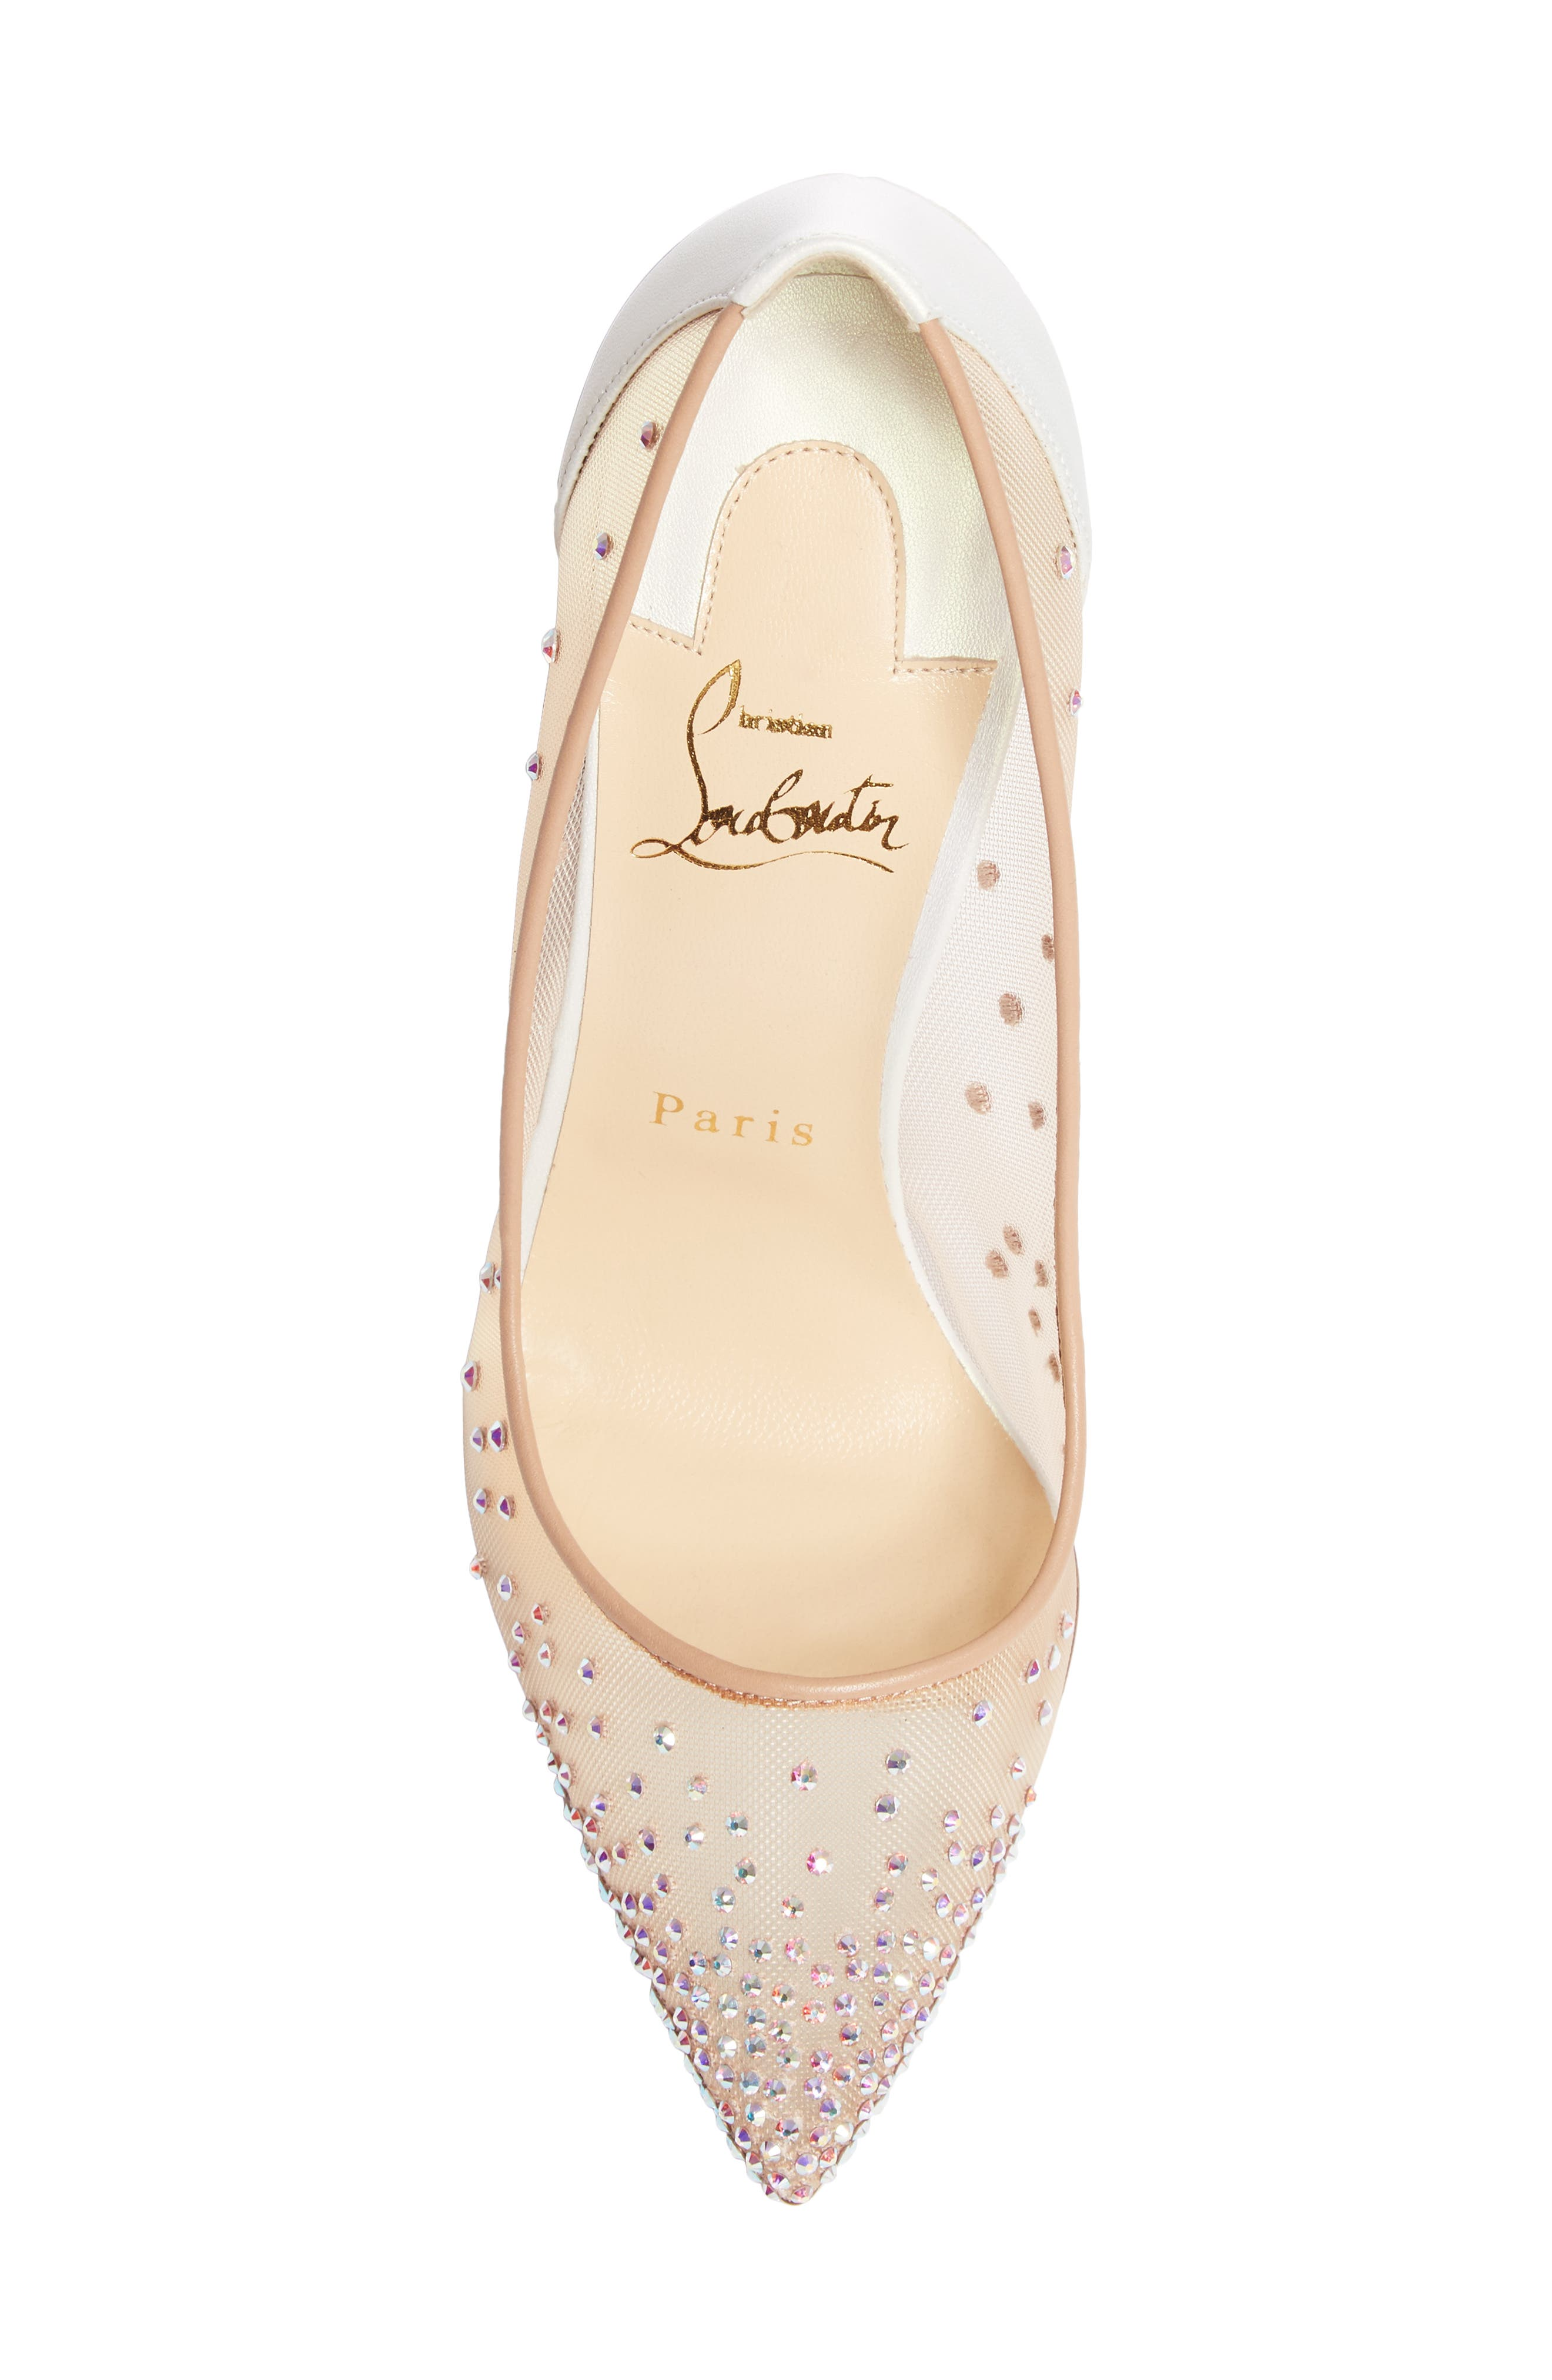 Follies Strass Pointy Toe Pump,                             Alternate thumbnail 5, color,                             SNOW/ NUDE